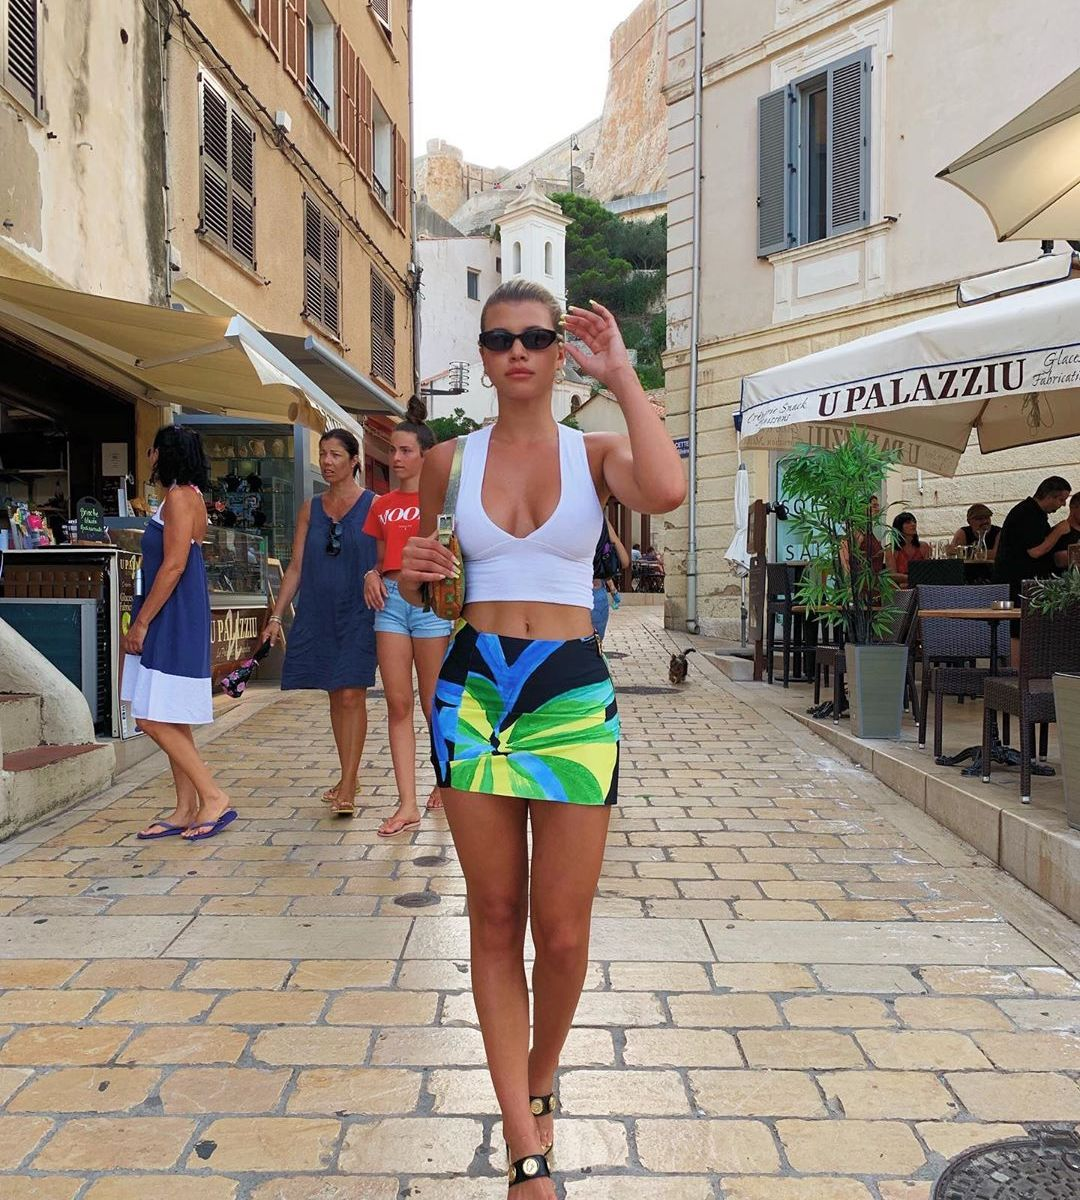 Hot Girl Summer Alert! Sofia Richie Stuns in a Colorful Miniskirt and Low-Cut Crop Top